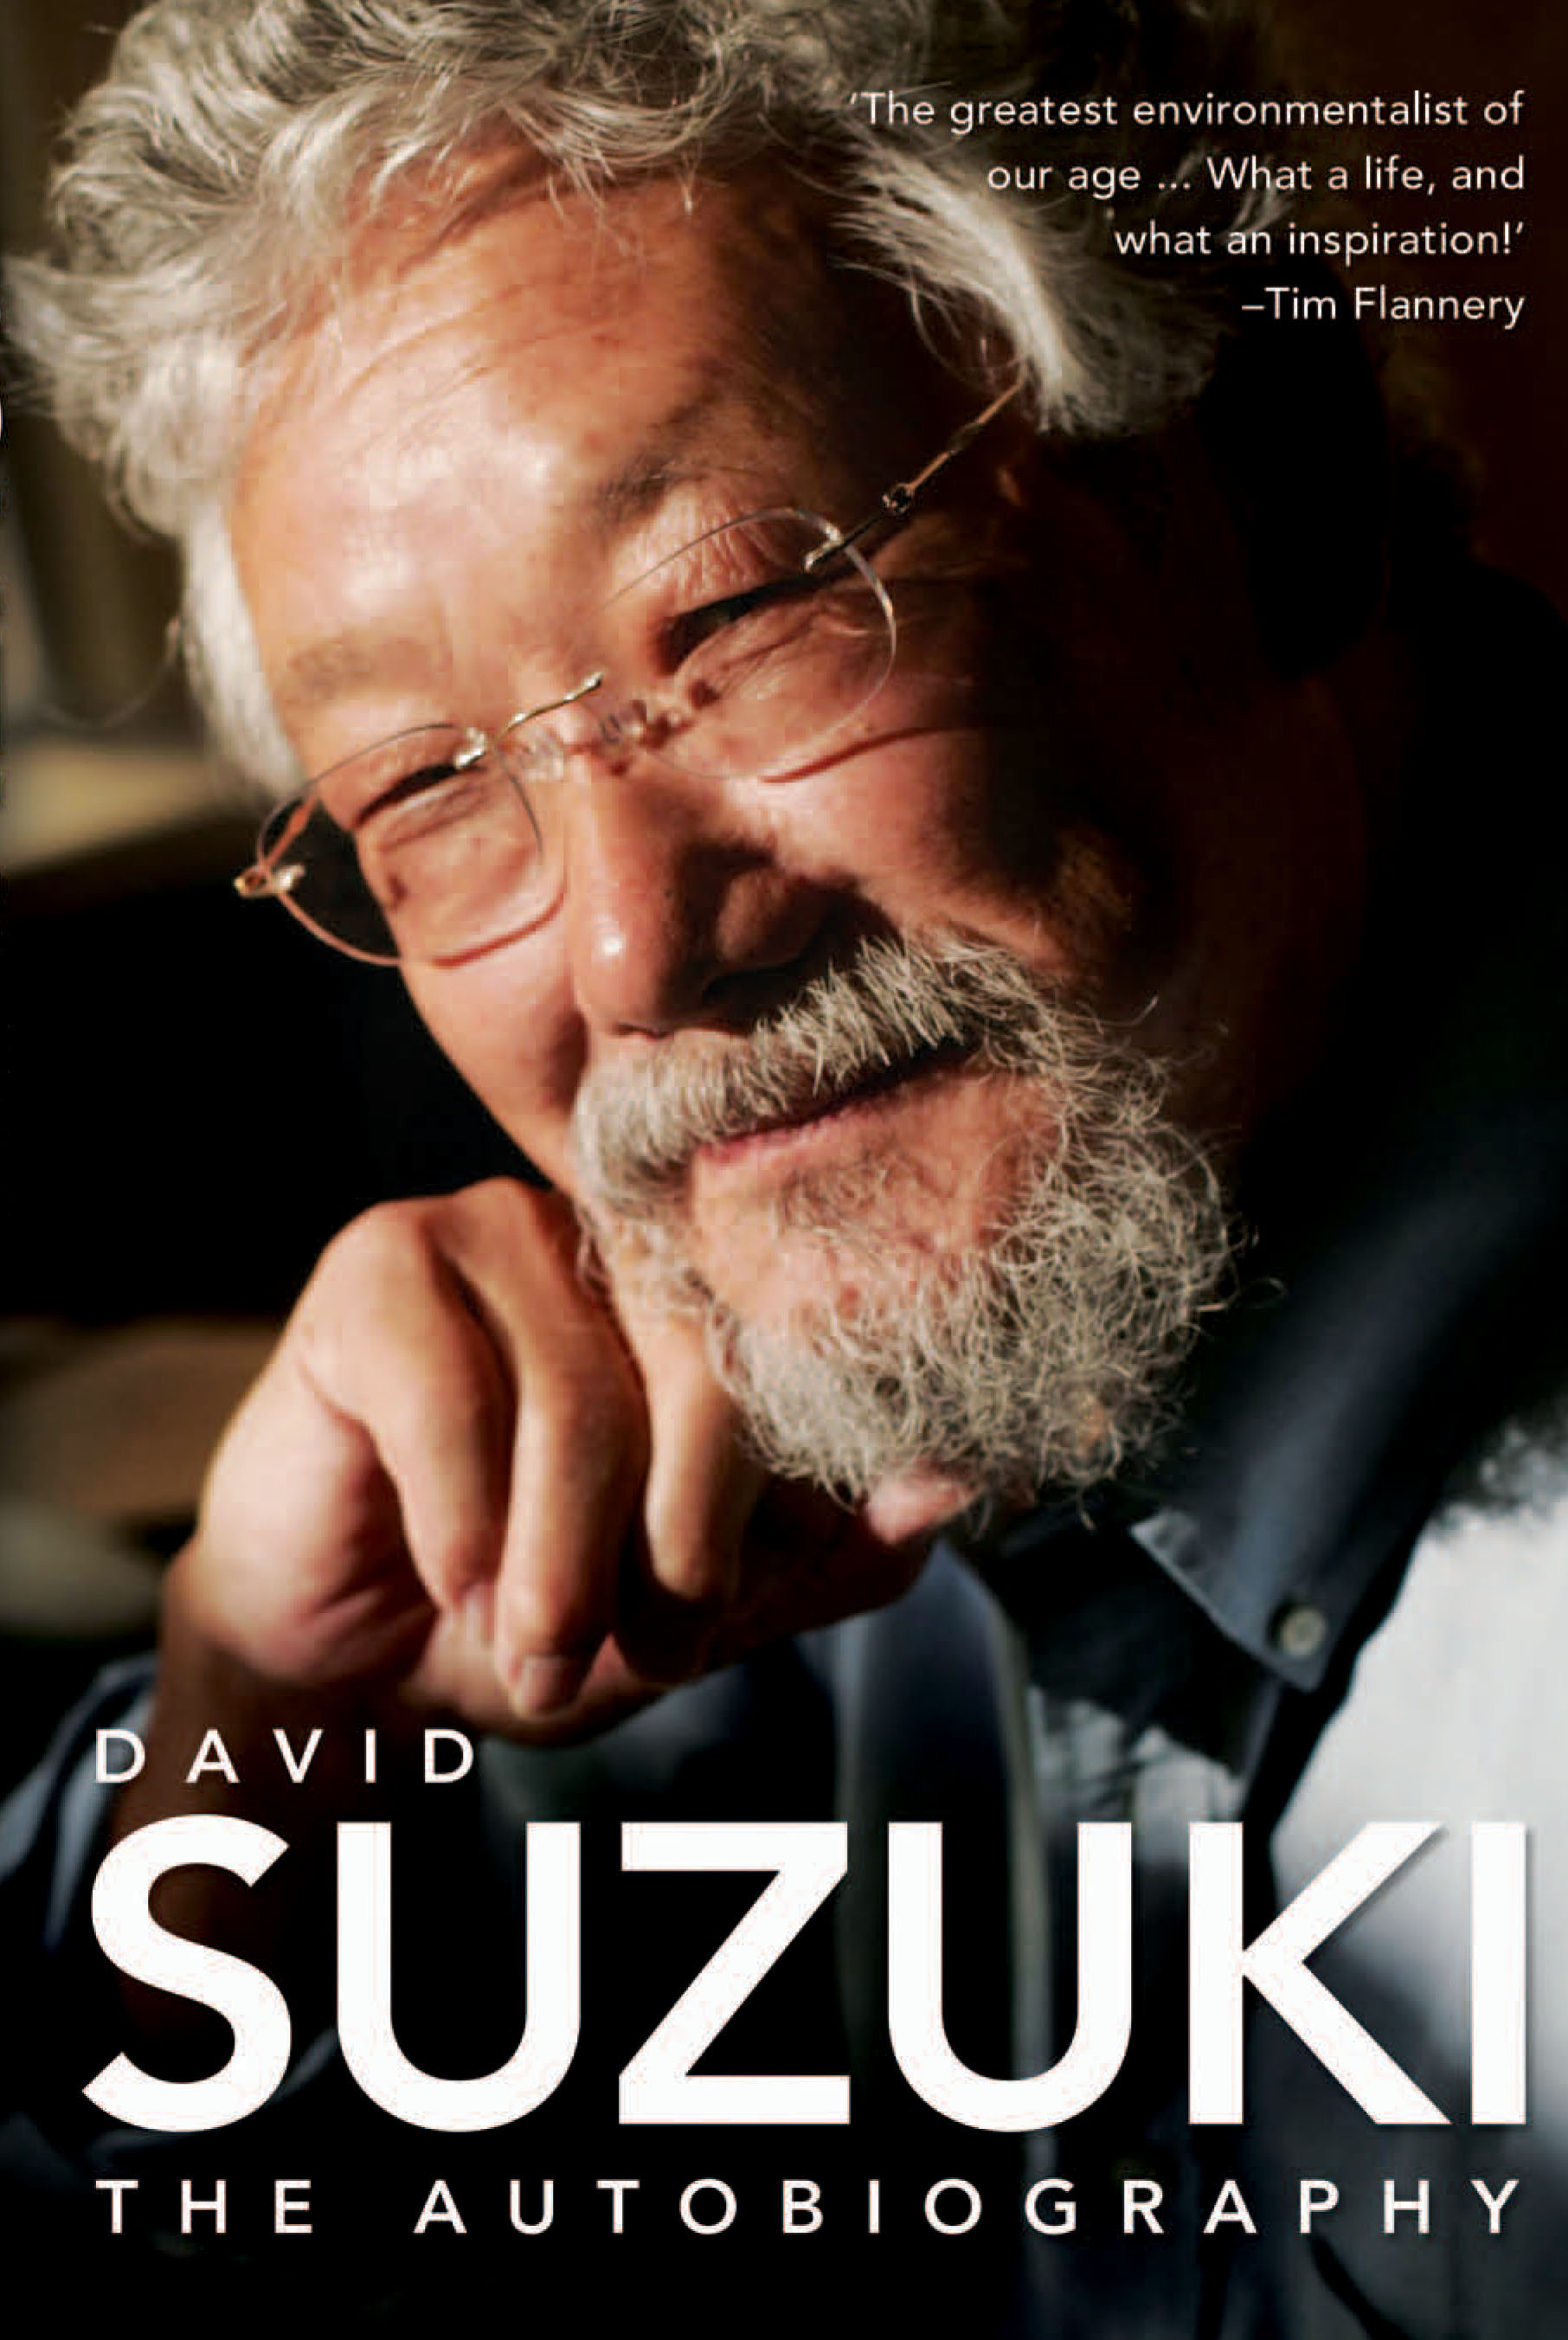 david suzuki essay In the legacy, suzuki pounds the podium less than in his 2009 essay collection,  david suzuki is one of the loudest voices in the global green community,.